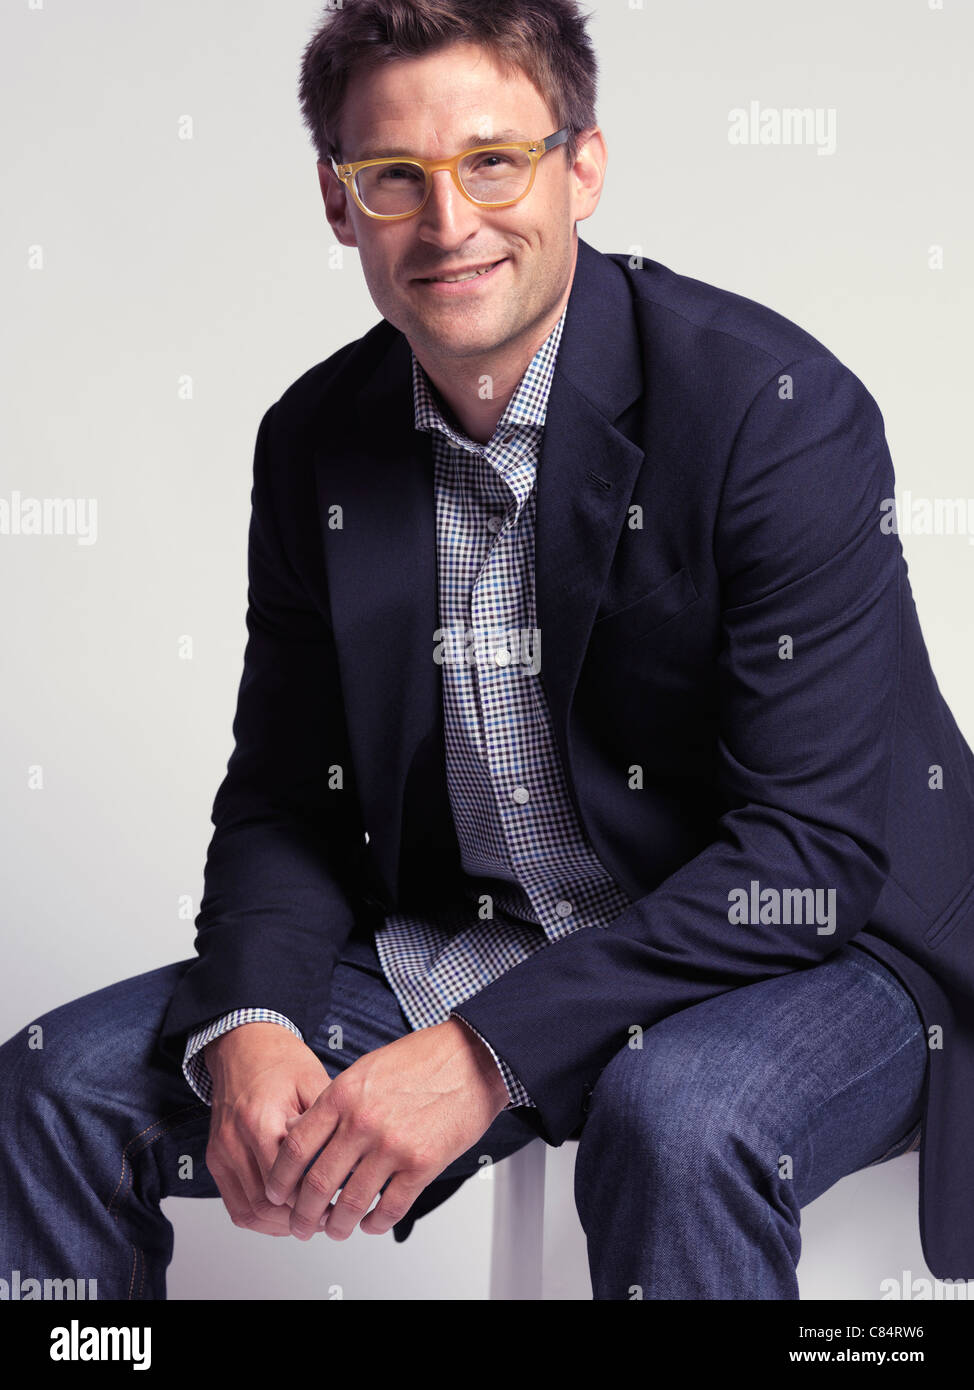 Fashionably dressed smiling man in his thirties wearing jeans and a stylish jacket - Stock Image